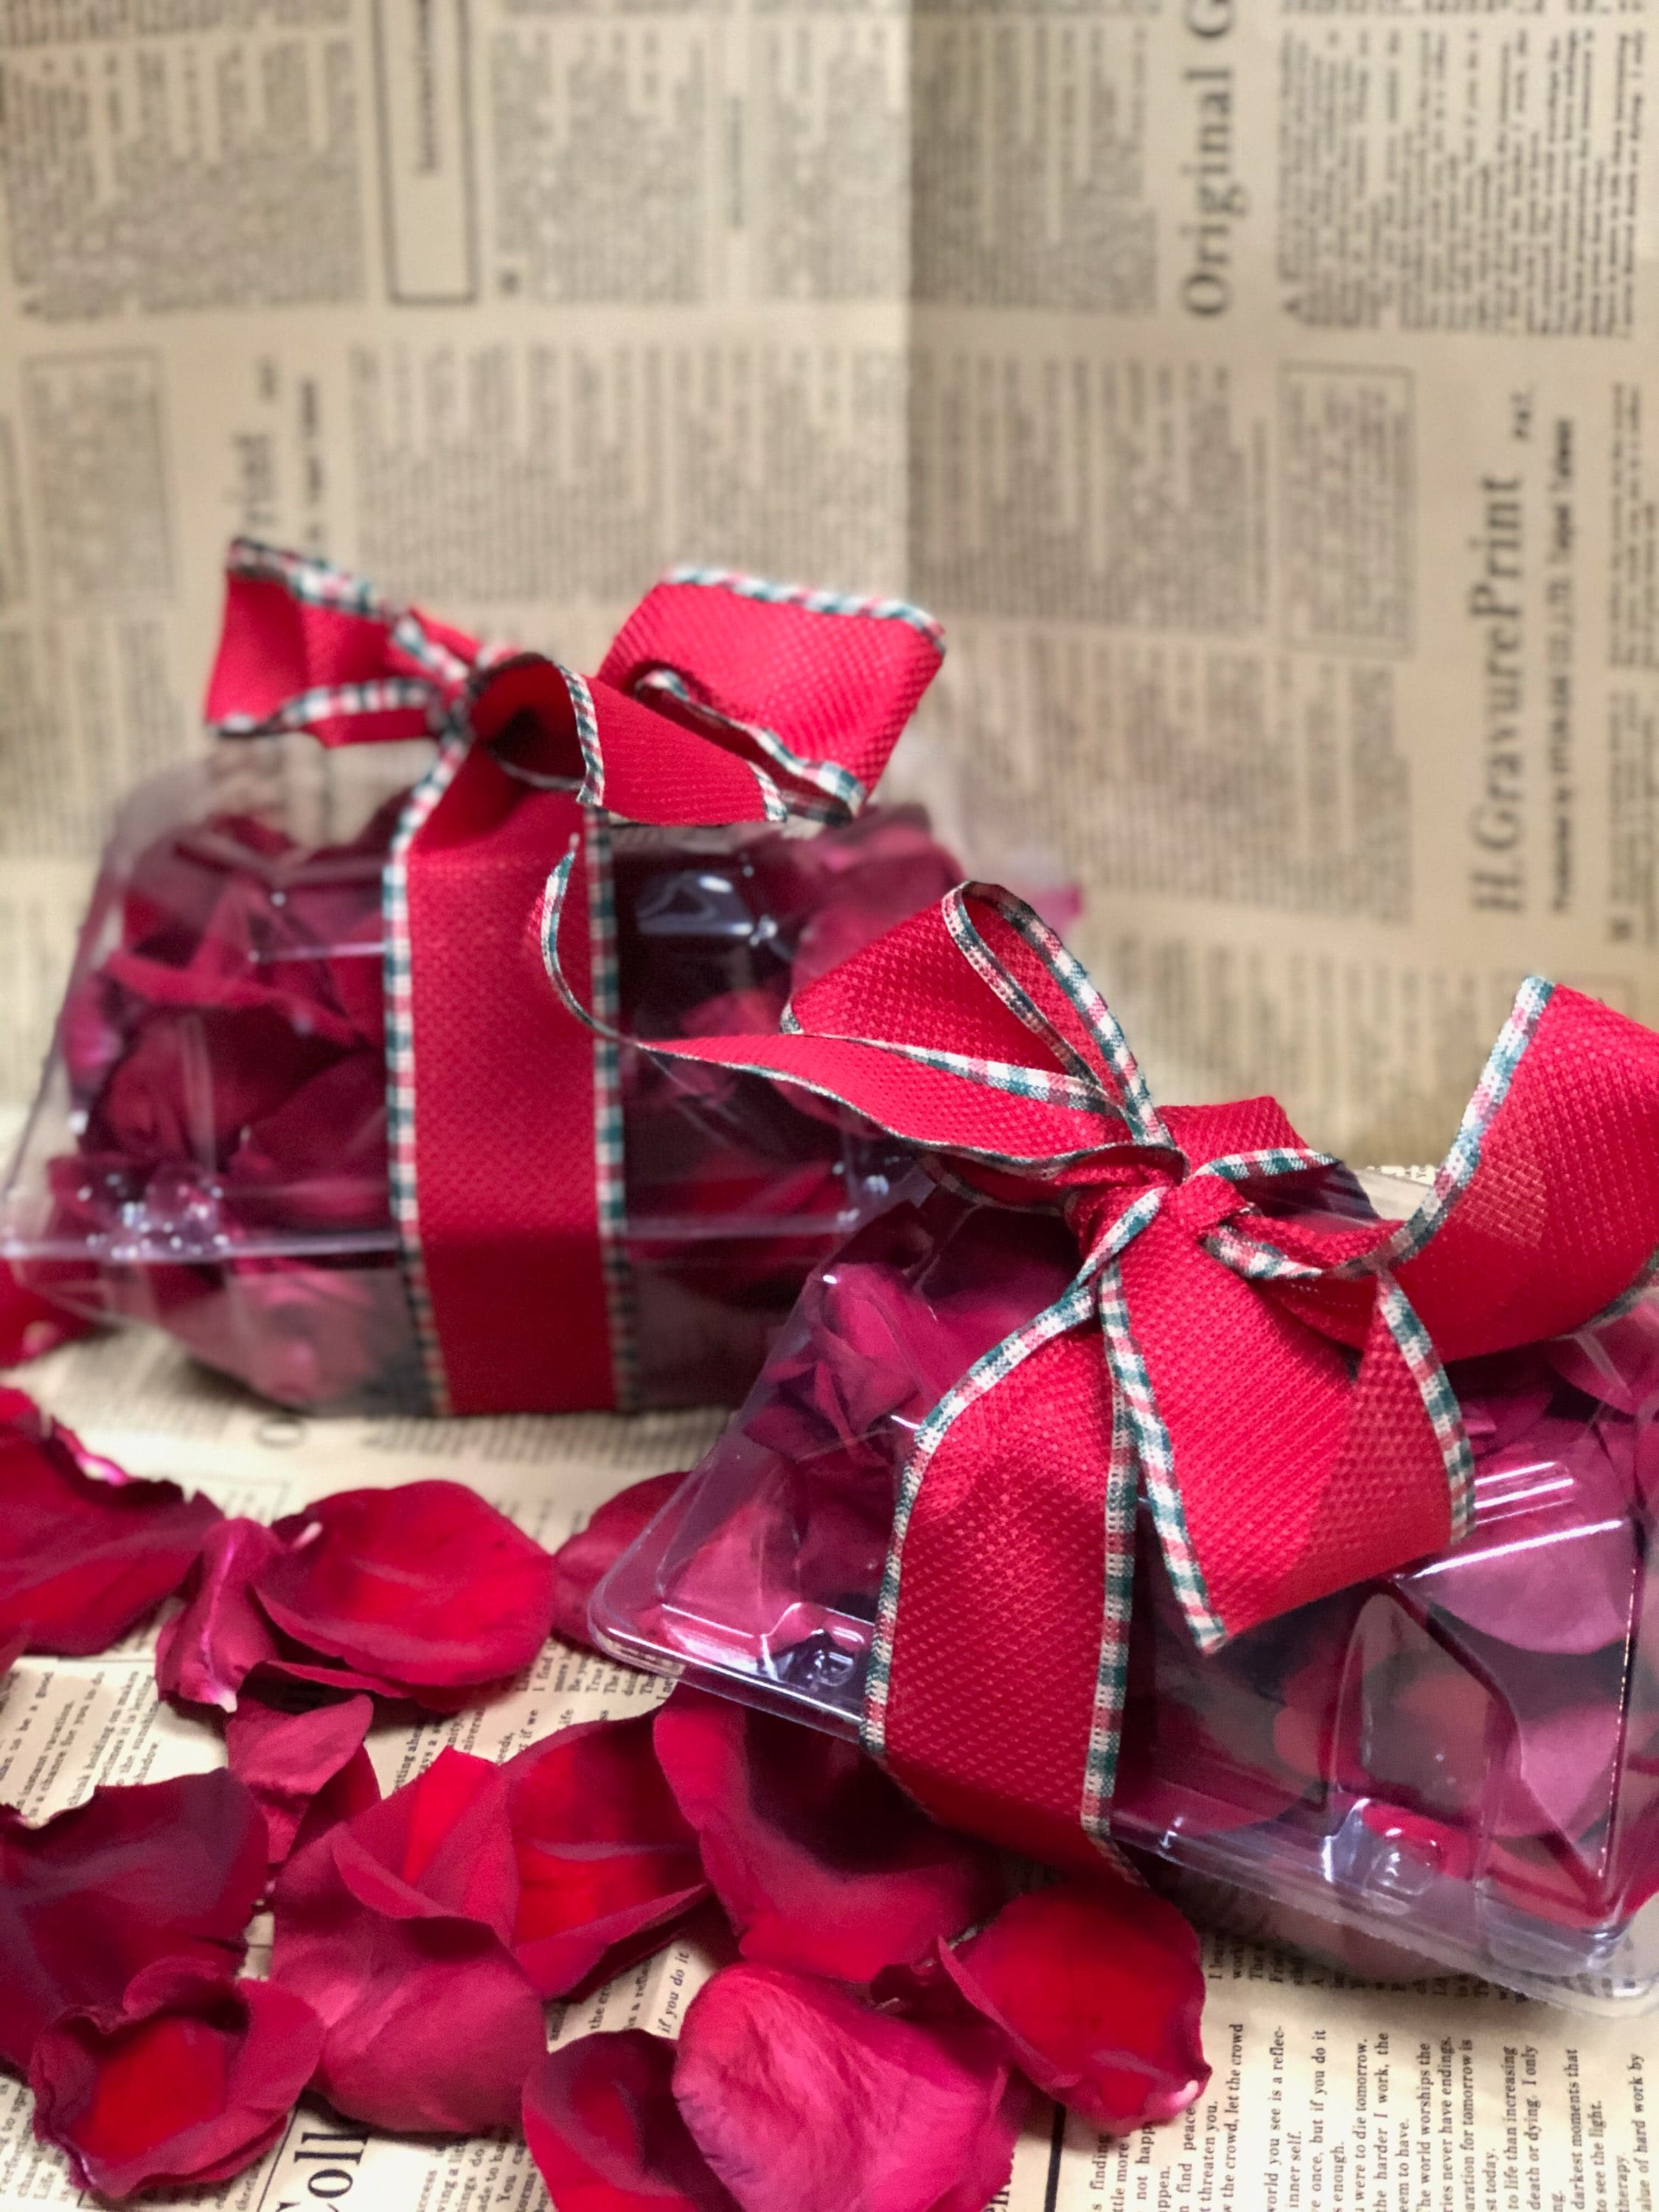 Box of Red Rose Petals